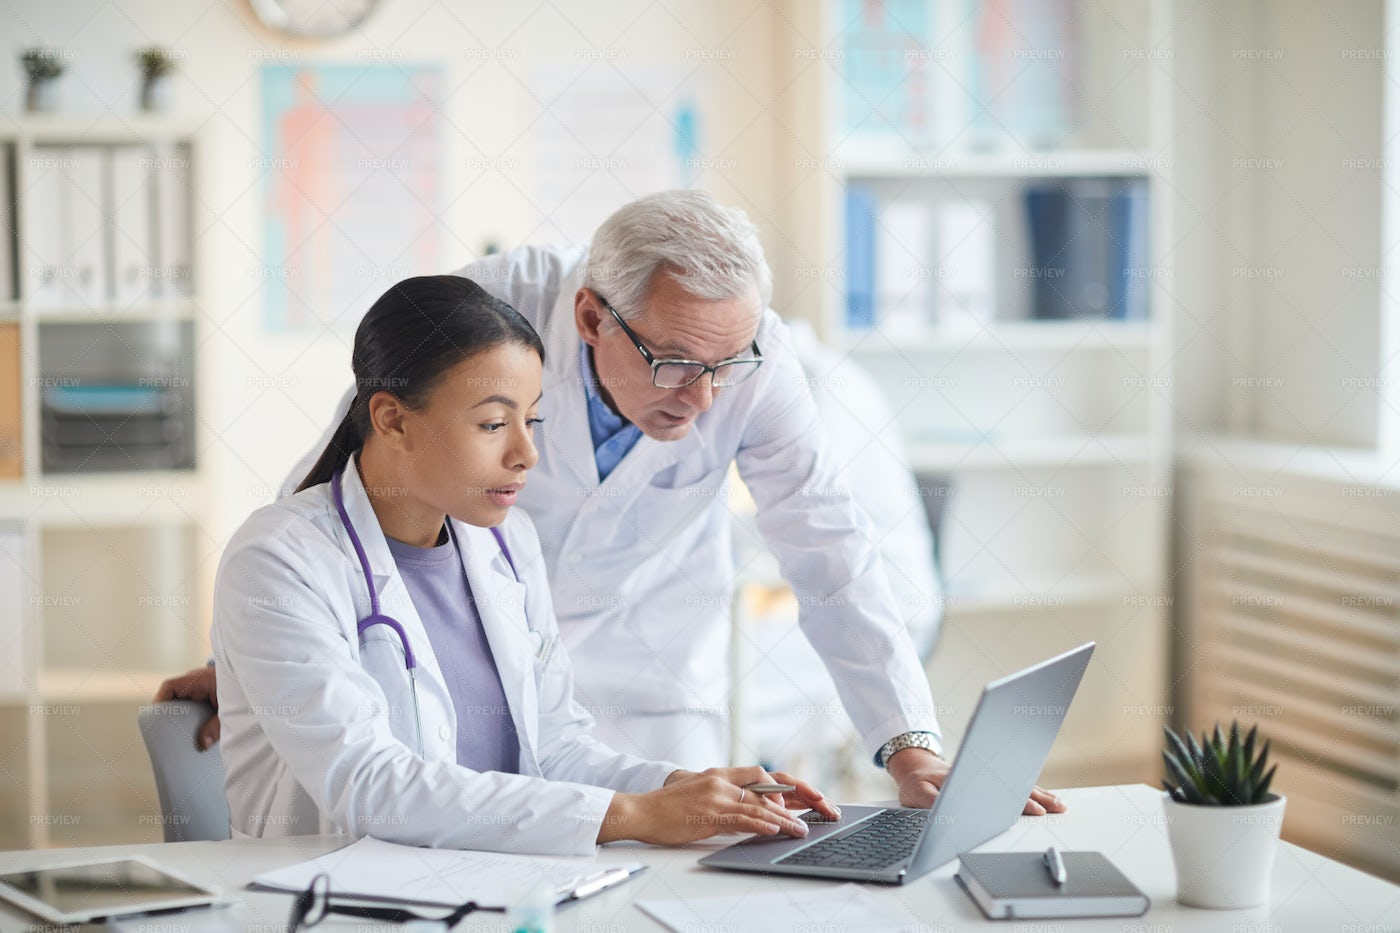 Two Doctors Working Together: Stock Photos